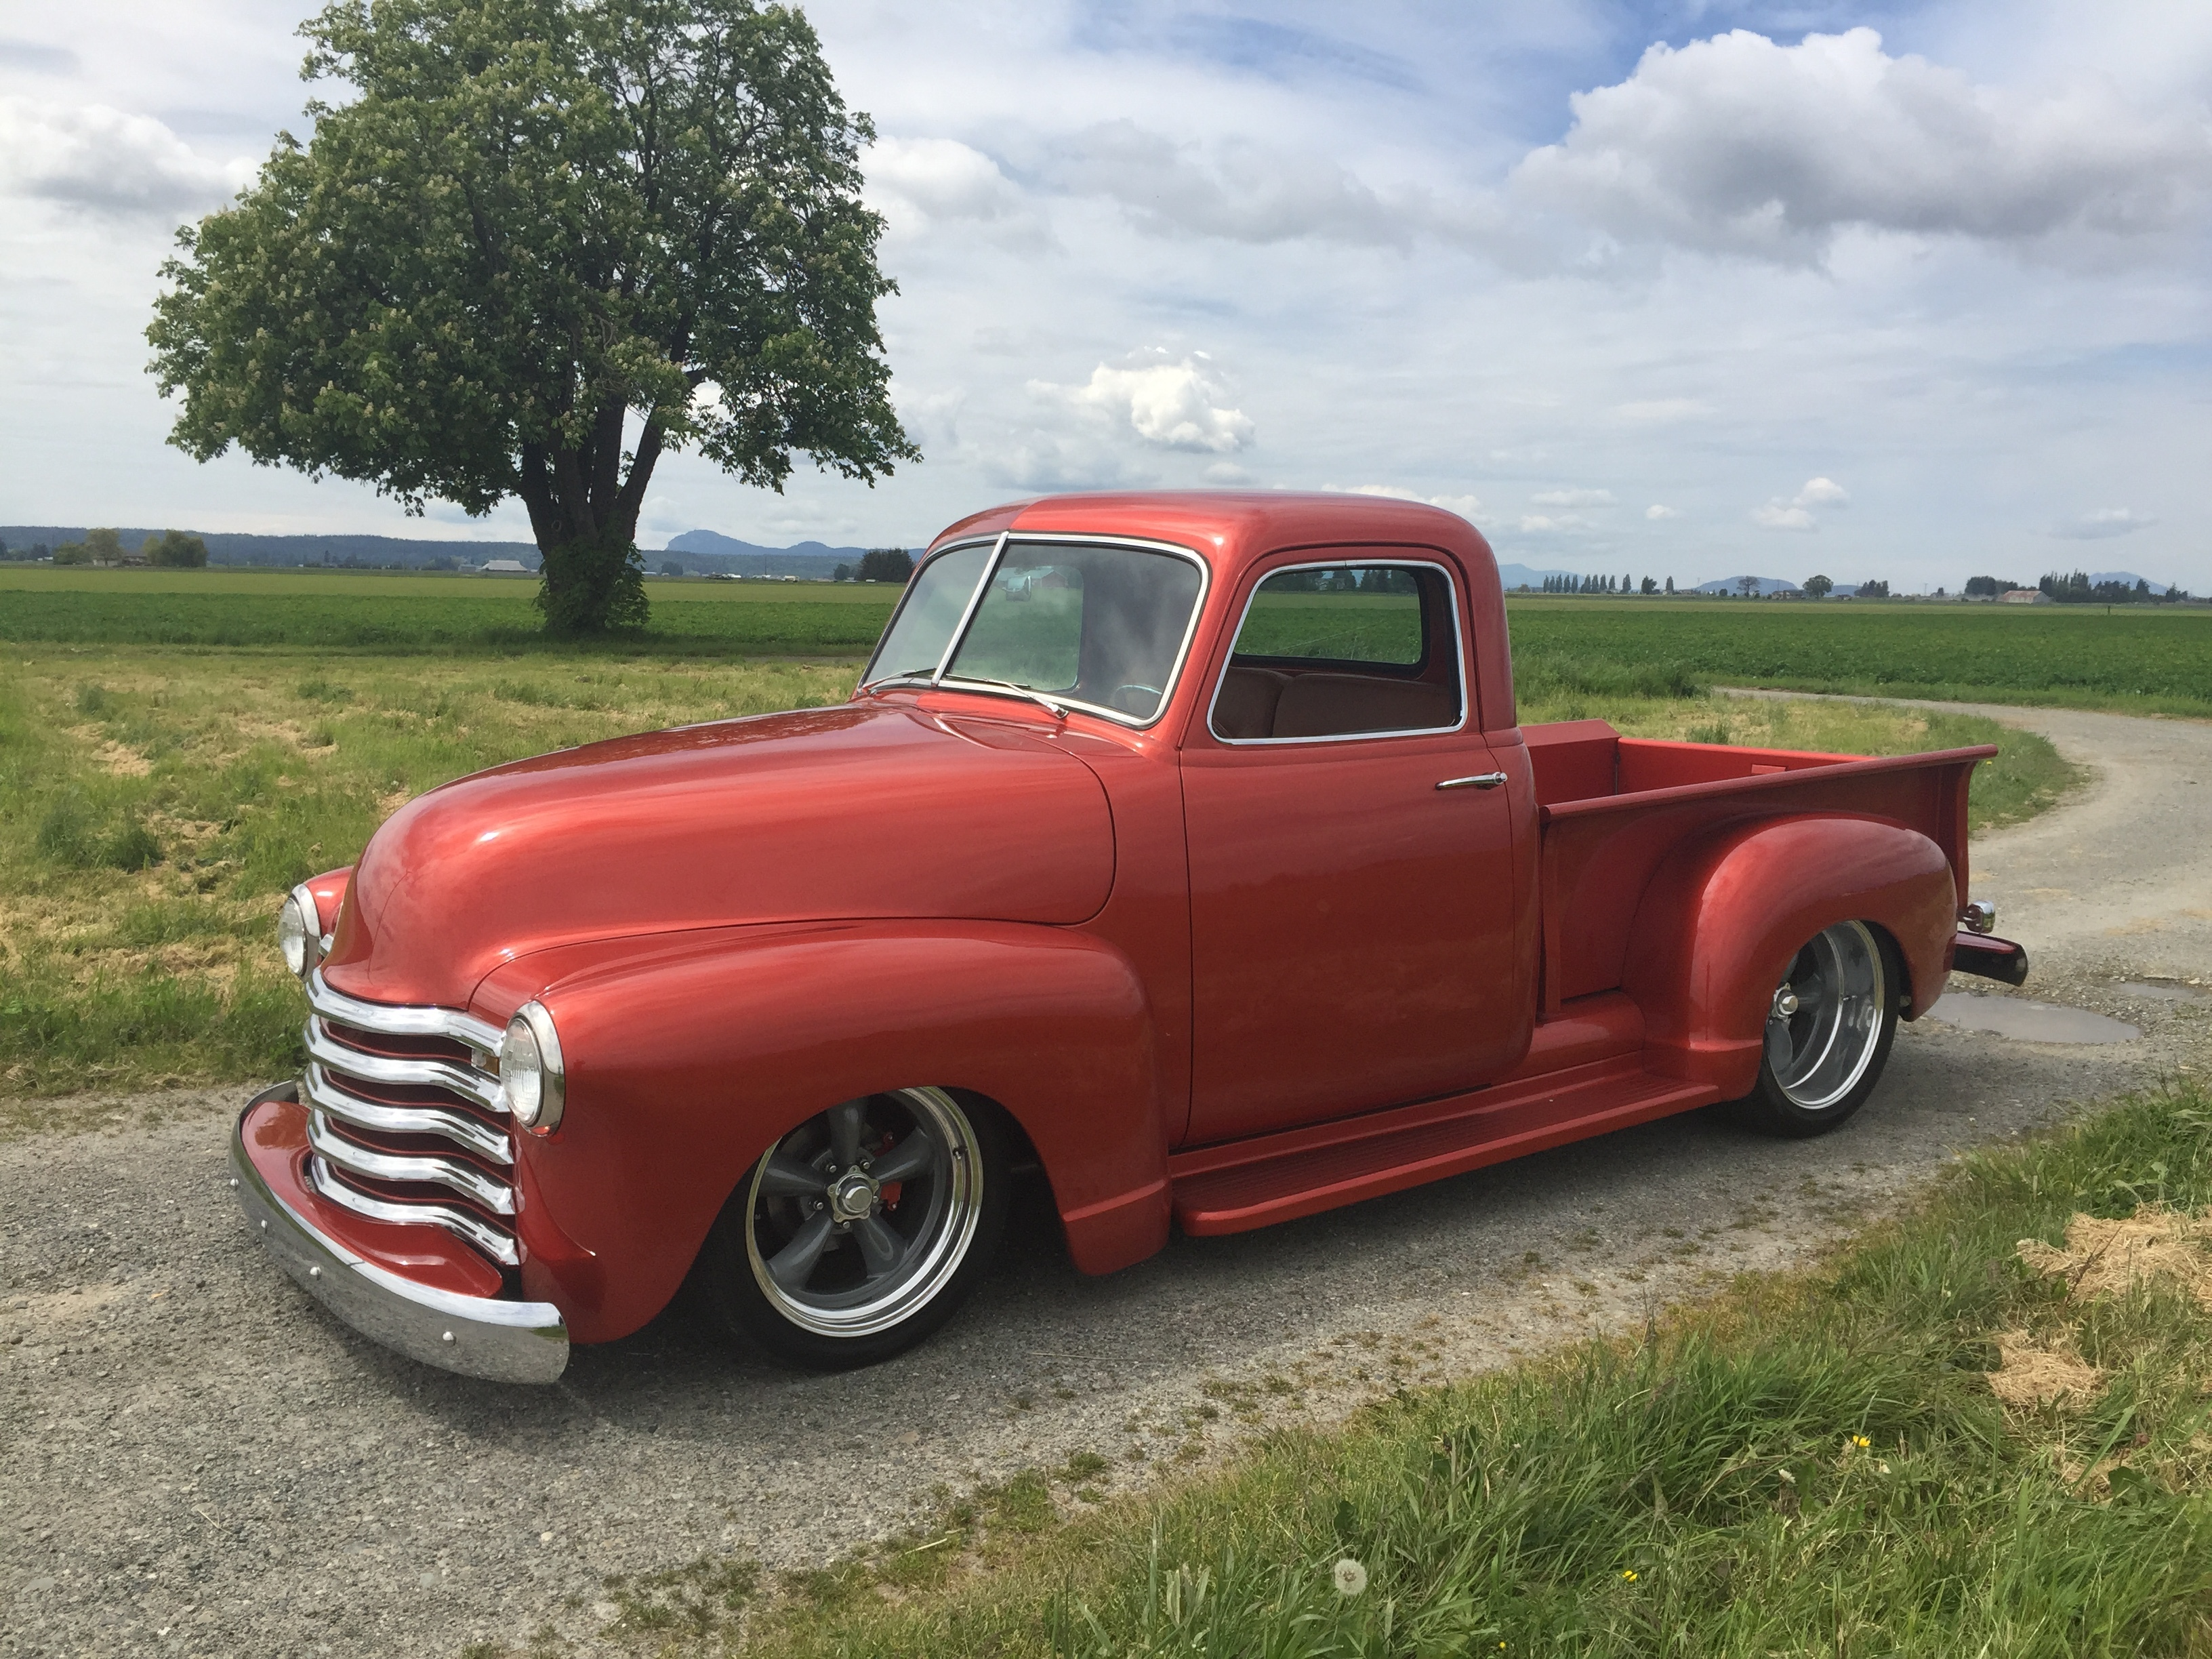 1952 Chevrolet 1 2 Ton Pickup Lost Amp Found Classic Car Co